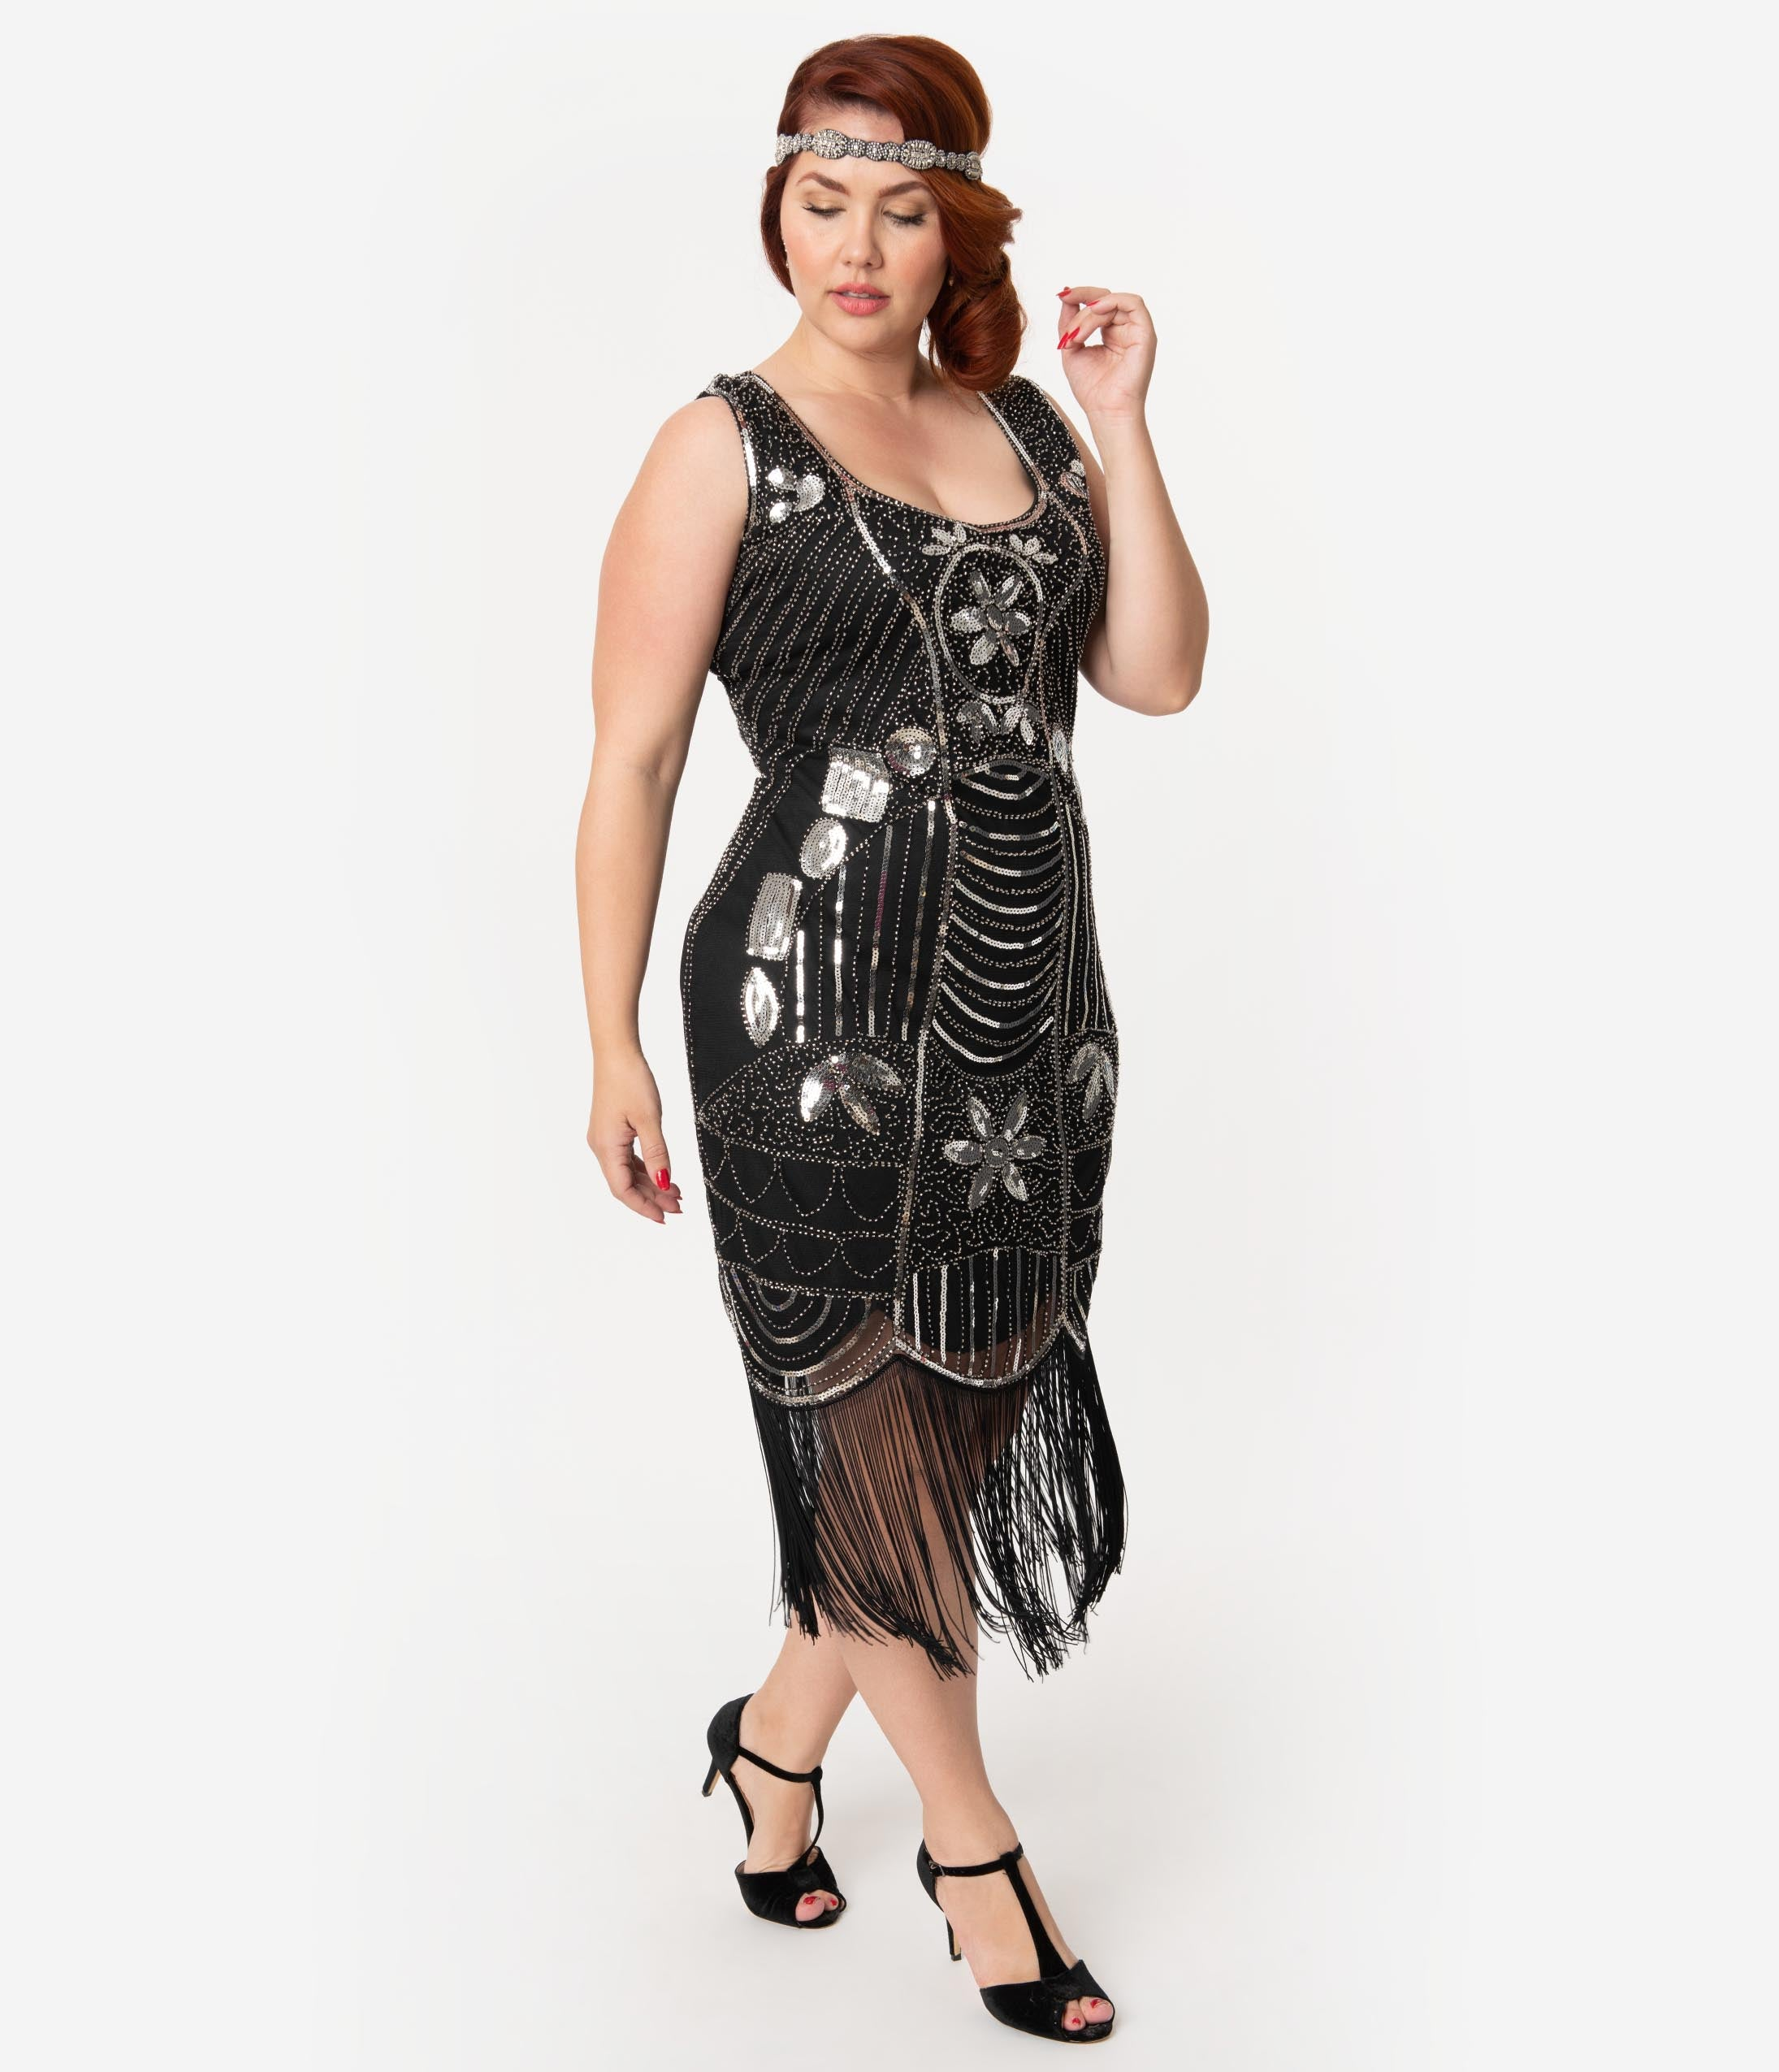 1920s Plus Size Flapper Dresses, Gatsby Dresses, Flapper Costumes Unique Vintage Plus Size Black  Silver Sequin Fringe Cremieux Flapper Dress $98.00 AT vintagedancer.com